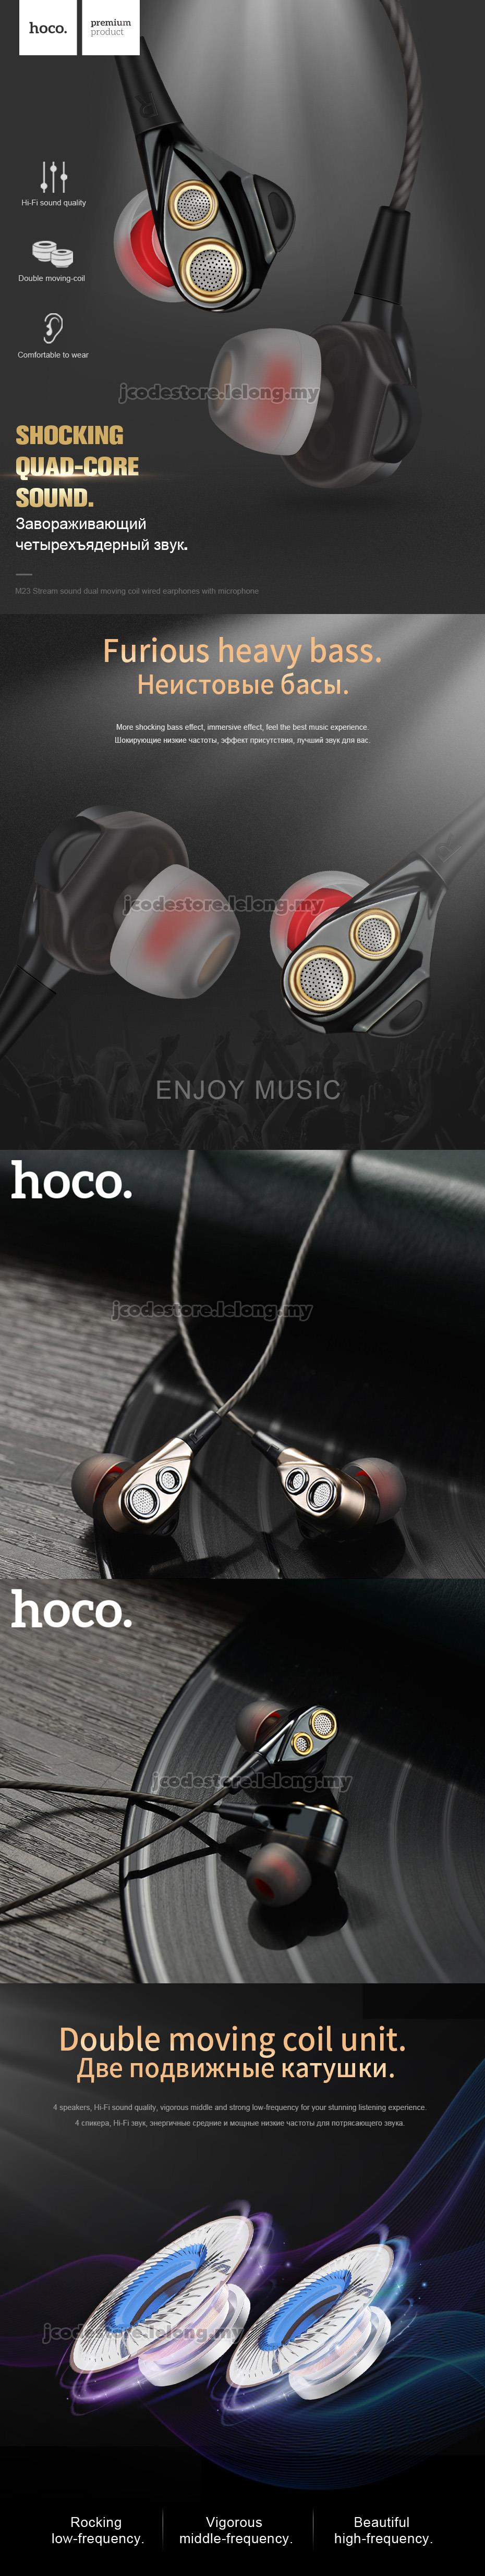 Hoco M23 Stream Sound Dual Moving Coil Wired Earphone With Microphone